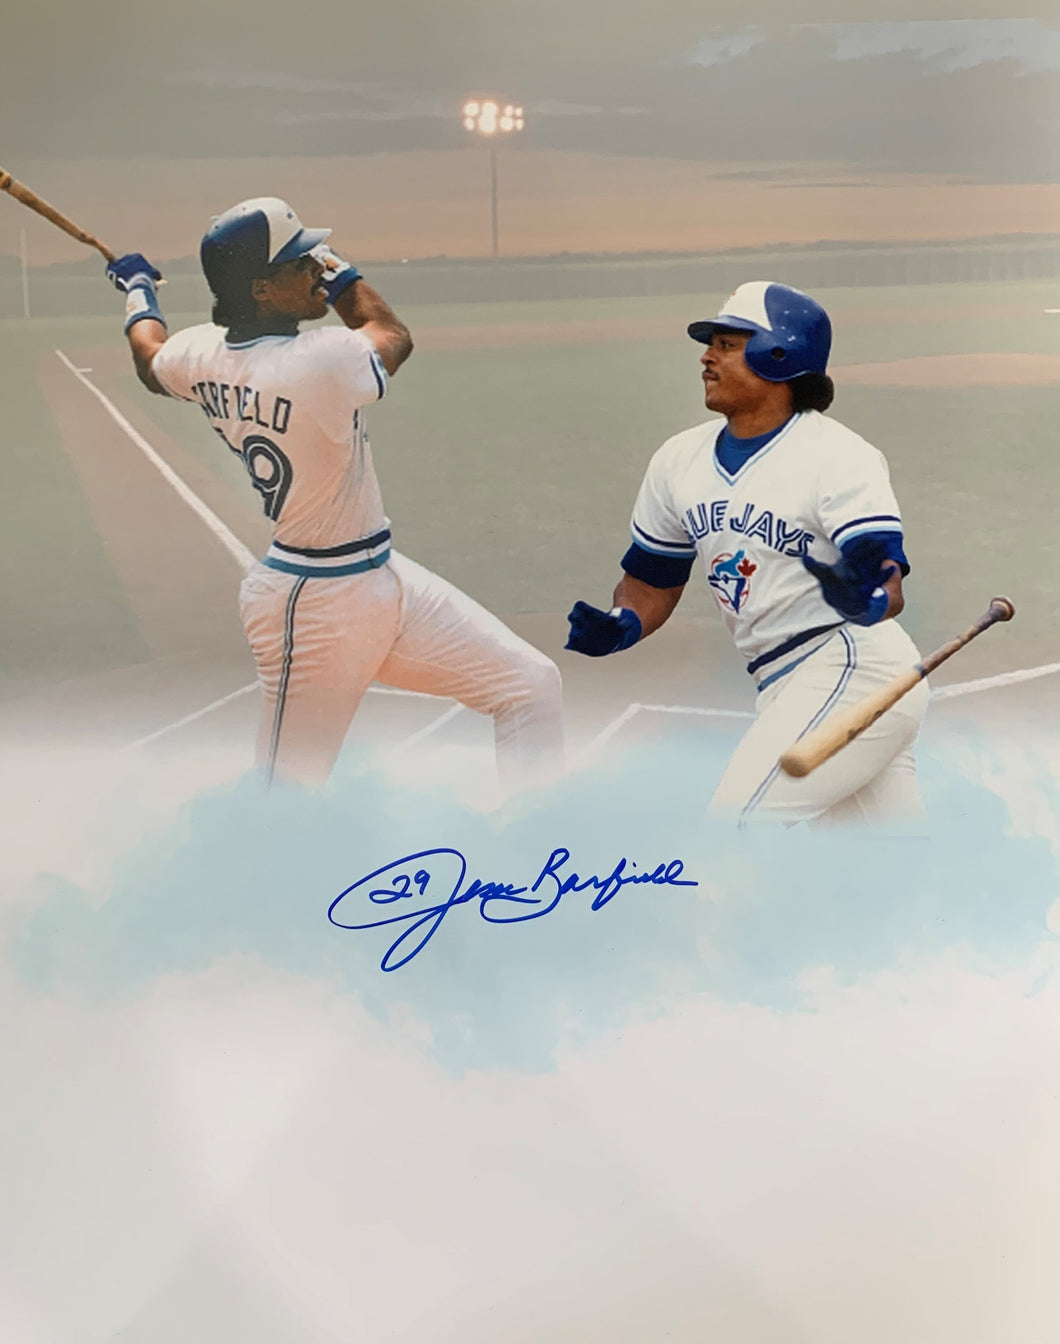 Jesse Barfield Signed 16x20 Photo - Toronto Blue Jays - AWM COA